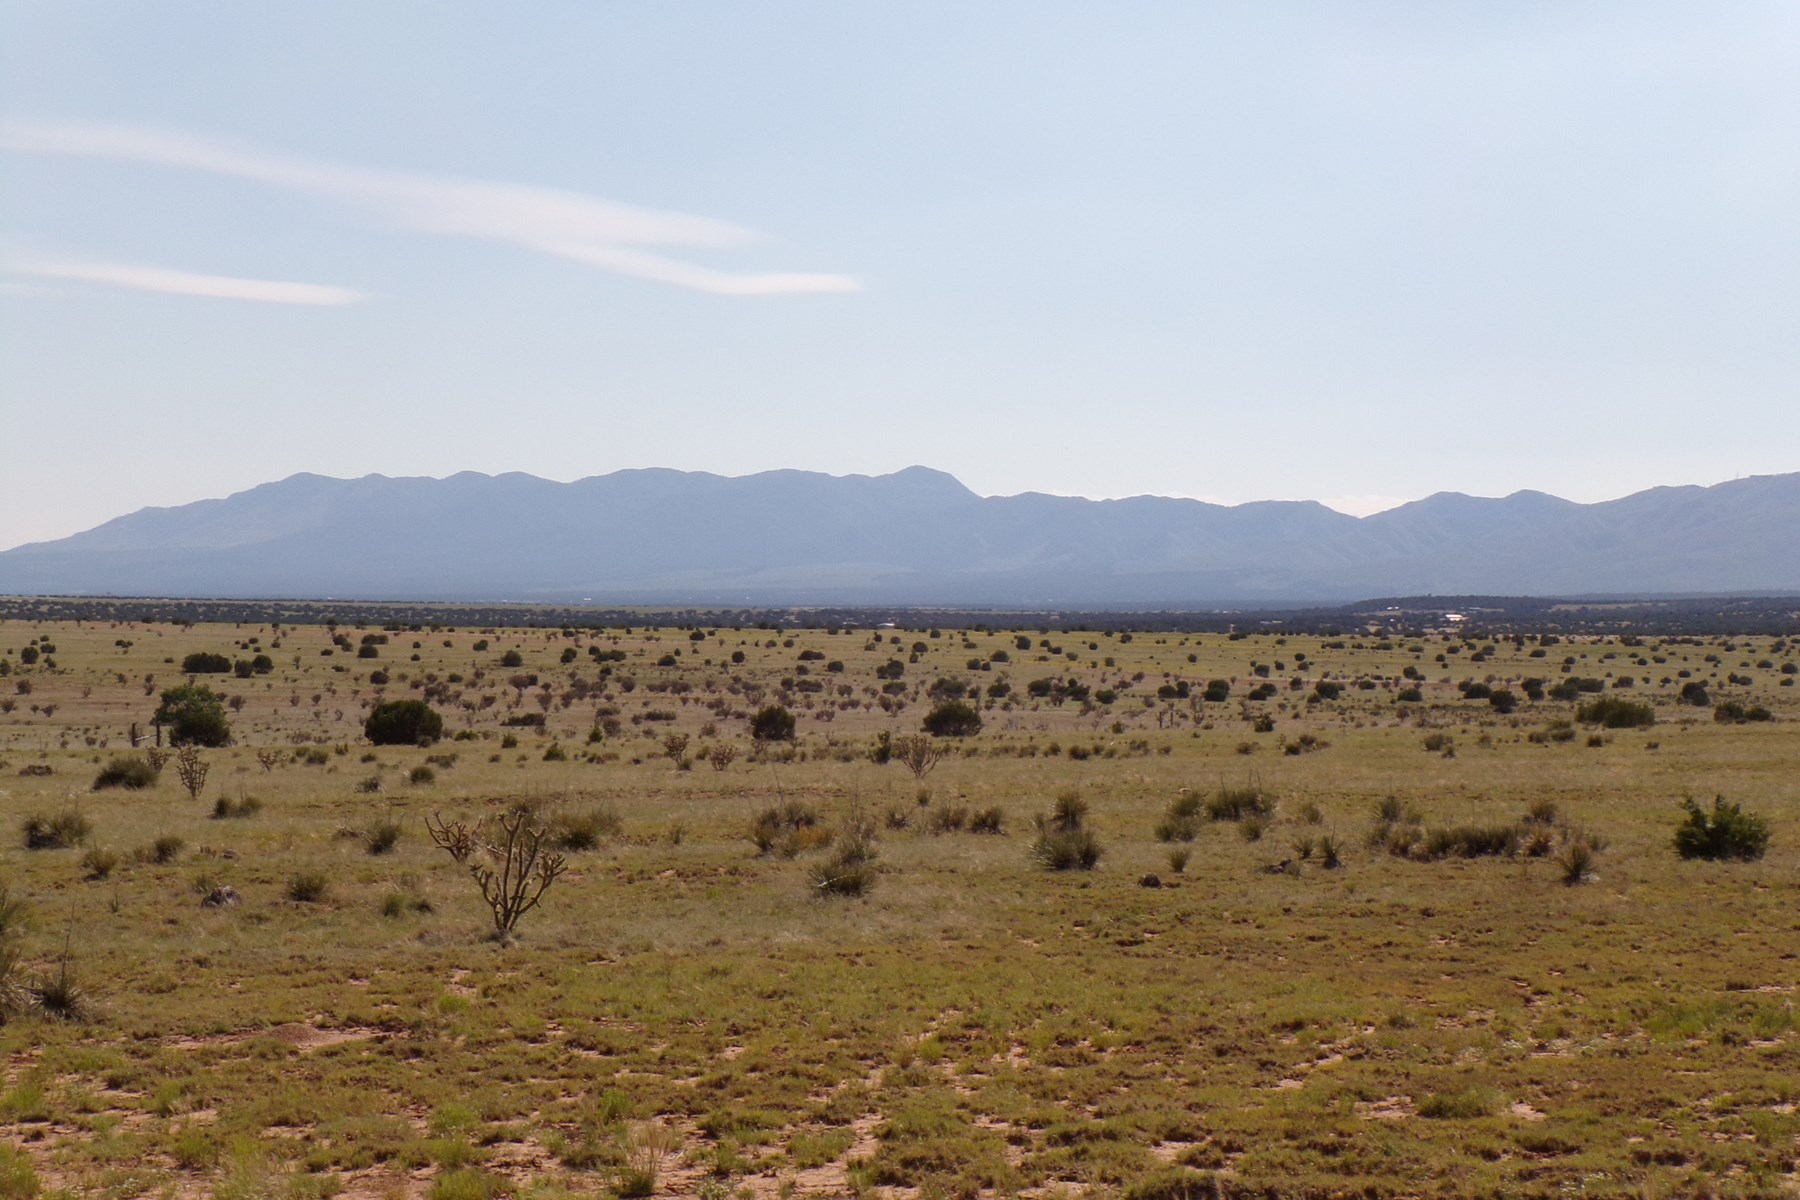 160 Acres Torrance County NM Grazing Land For Sale